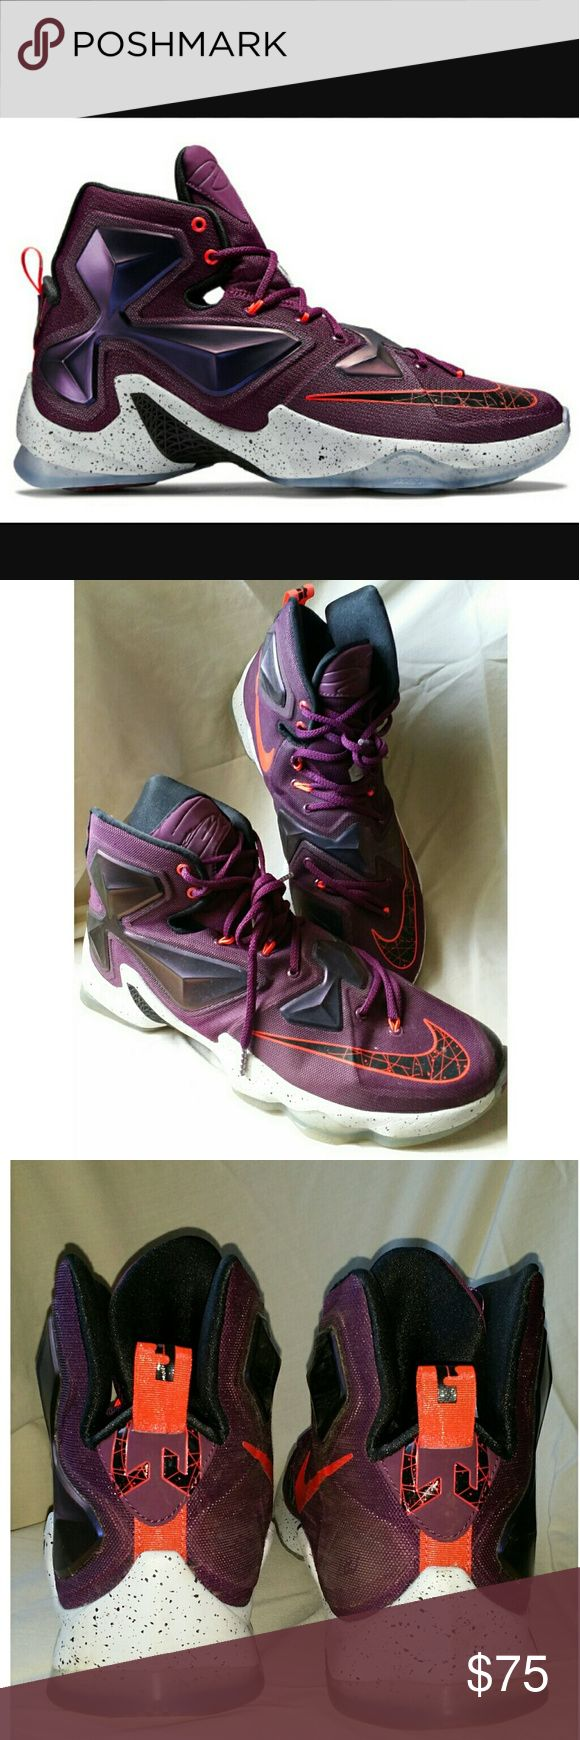 🏀Nike LeBron XIII - Written In The Stars sneaker You will not find these anywhere for this price👍 Original price $200 The Nike LeBron 13 is constructed of three main components – a breathable sock-like fit that provides flexibility but still gives you that lockdown support. A Hyperposite shell for impact protection. Lastly, a bolder Nike Hex Zoom Air cushioning unit. Super comfy. Excellent used condition, bought for my 12 year old who quickly grew out of them. 😁 Nike Shoes Sneakers